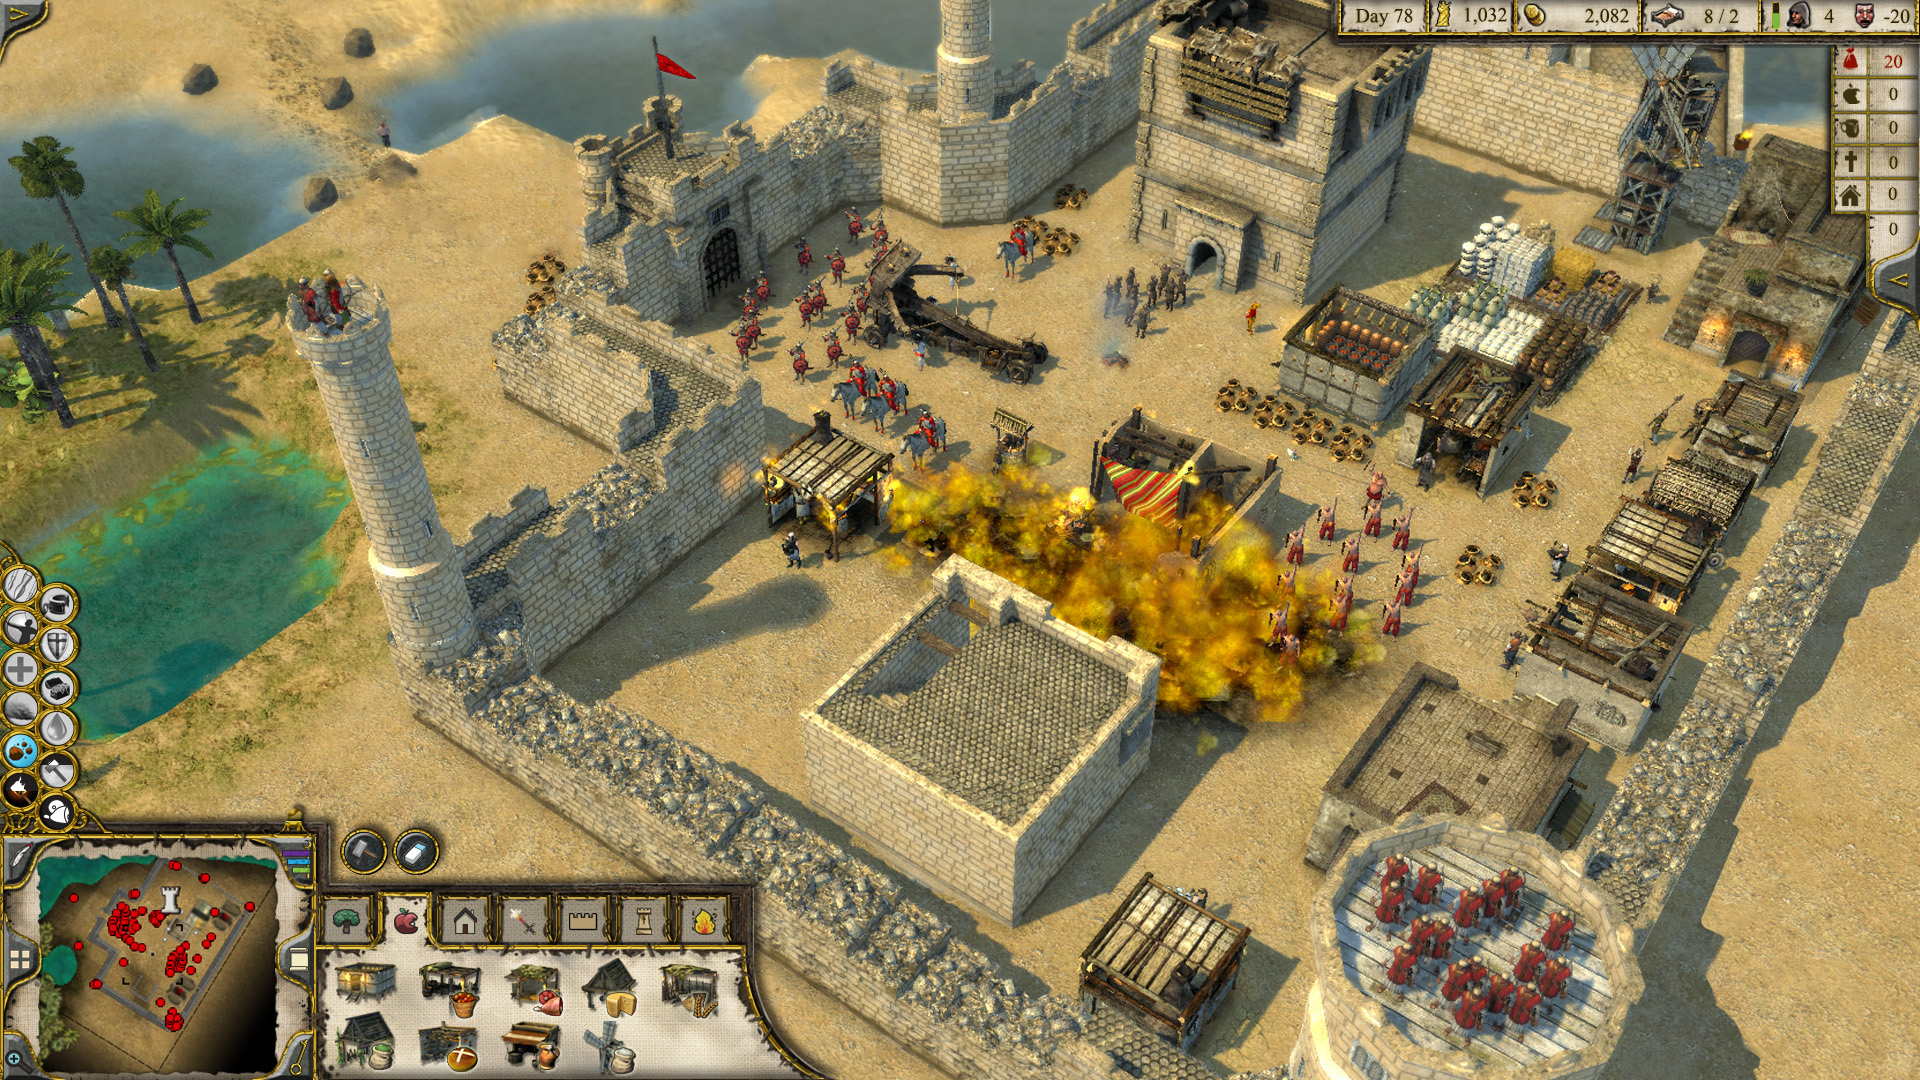 crusader stronghold по сети: